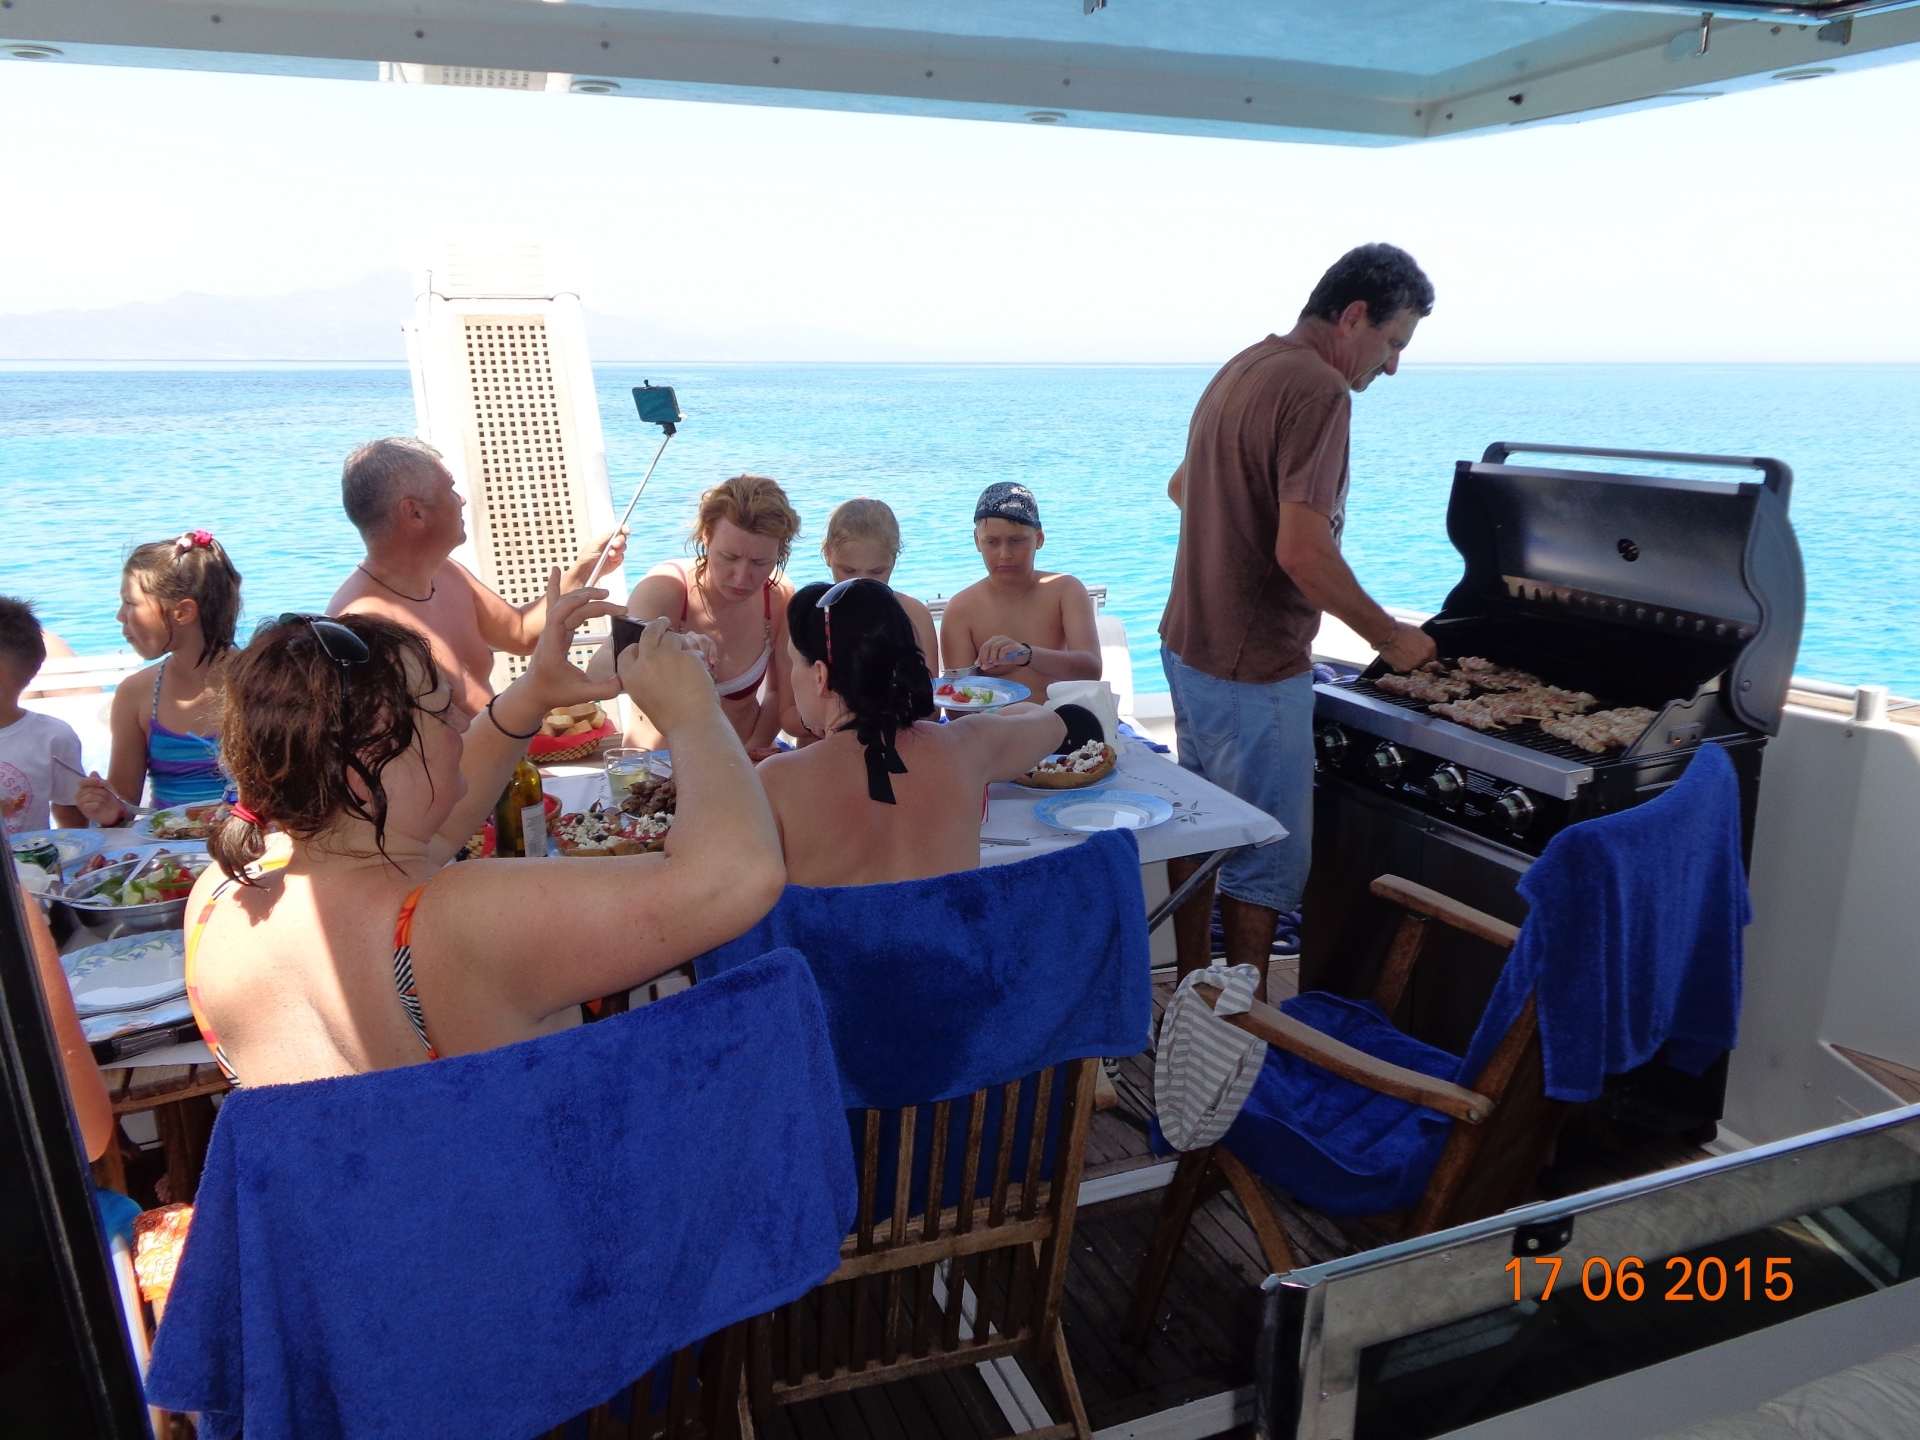 Barbeque on the sea